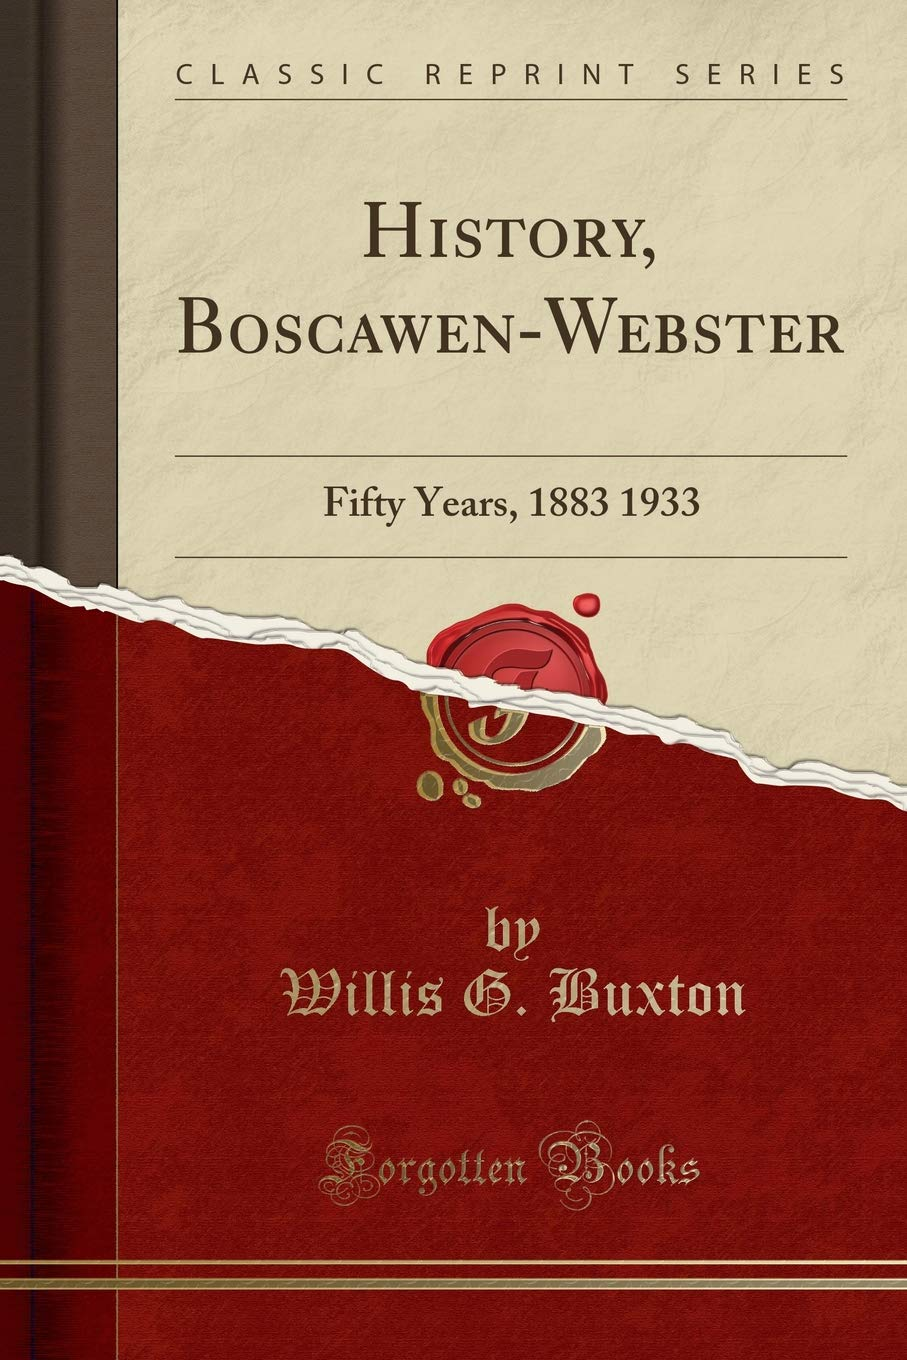 History, Boscawen-Webster: Fifty Years, 1883 1933 (Classic Reprint) ebook